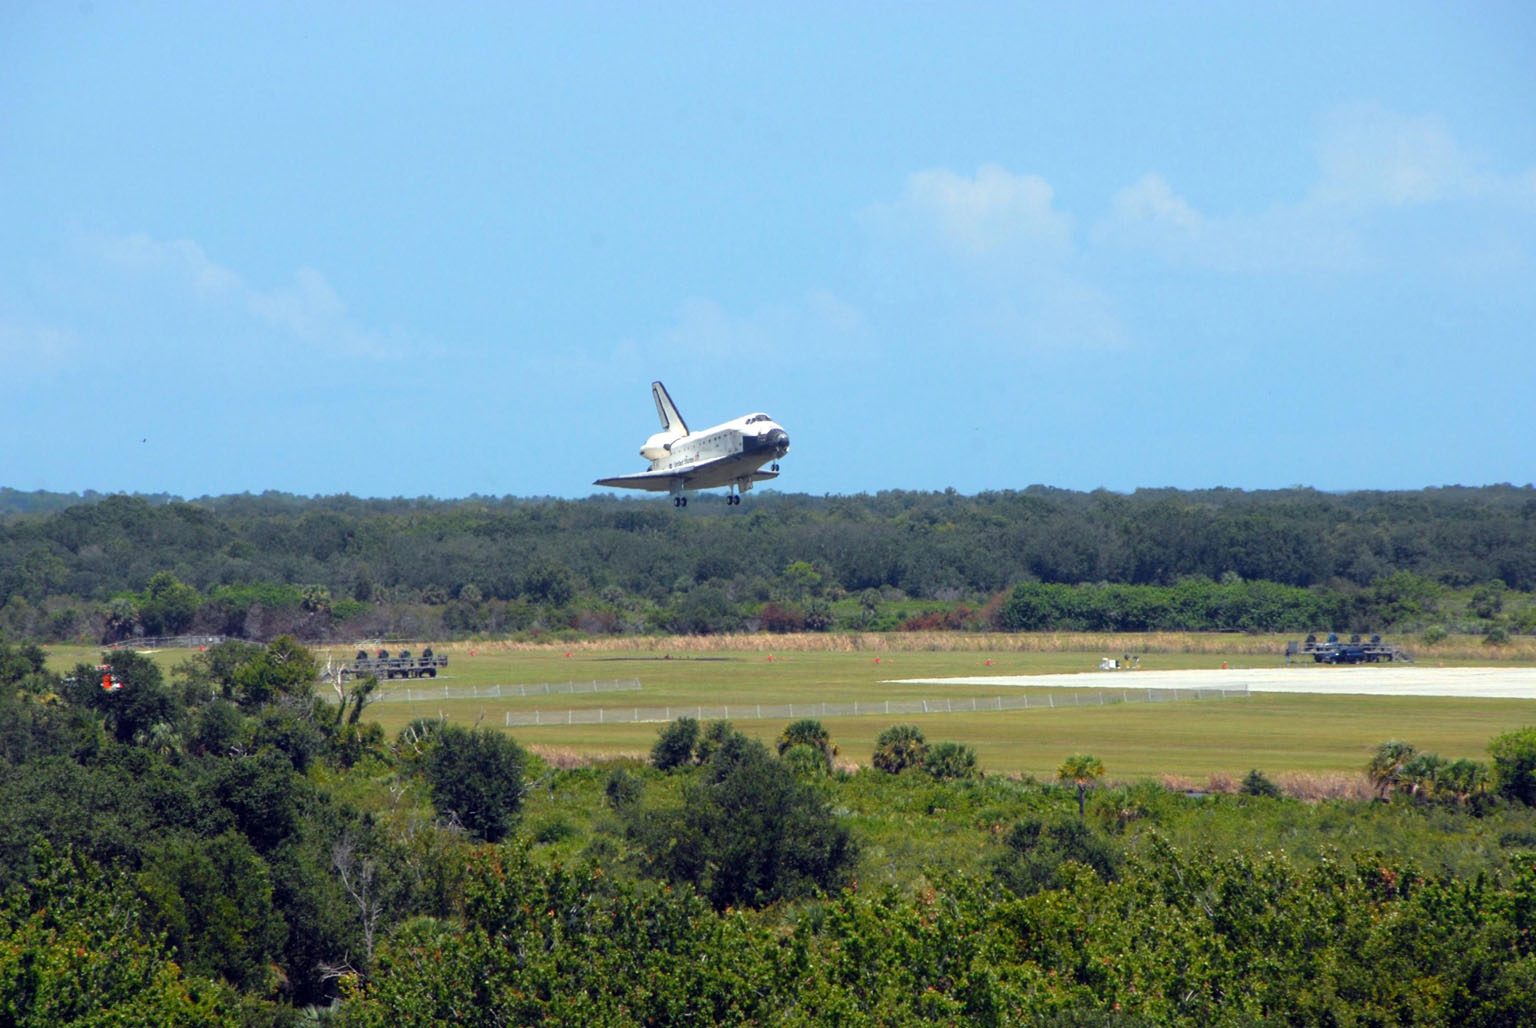 KENNEDY SPACE CENTER, FLA. -- Endeavour clears the trees as it approaches landing on runway 15 at NASA's Kennedy Space Center. The Space Shuttle Endeavour crew, led by Commander Scott Kelly, completes a 13-day mission to the International Space Station. The STS-118 mission began Aug. 8 and installed a new gyroscope, an external spare parts platform and another truss segment to the expanding station. Endeavour's main gear touched down at 12:32:16 p.m. EDT. Nose gear touchdown was at 12:32:29 p.m. and wheel stop was at 12:33:20 p.m. Endeavour traveled nearly 5.3 million miles, landing on orbit 201. STS-118 was the 119th space shuttle flight, the 22nd flight to the station, the 20th flight for Endeavour and the second of four missions planned for 2007. This was the 65th landing of an orbiter at Kennedy. Photo credit: NASA/Ken Thornsley